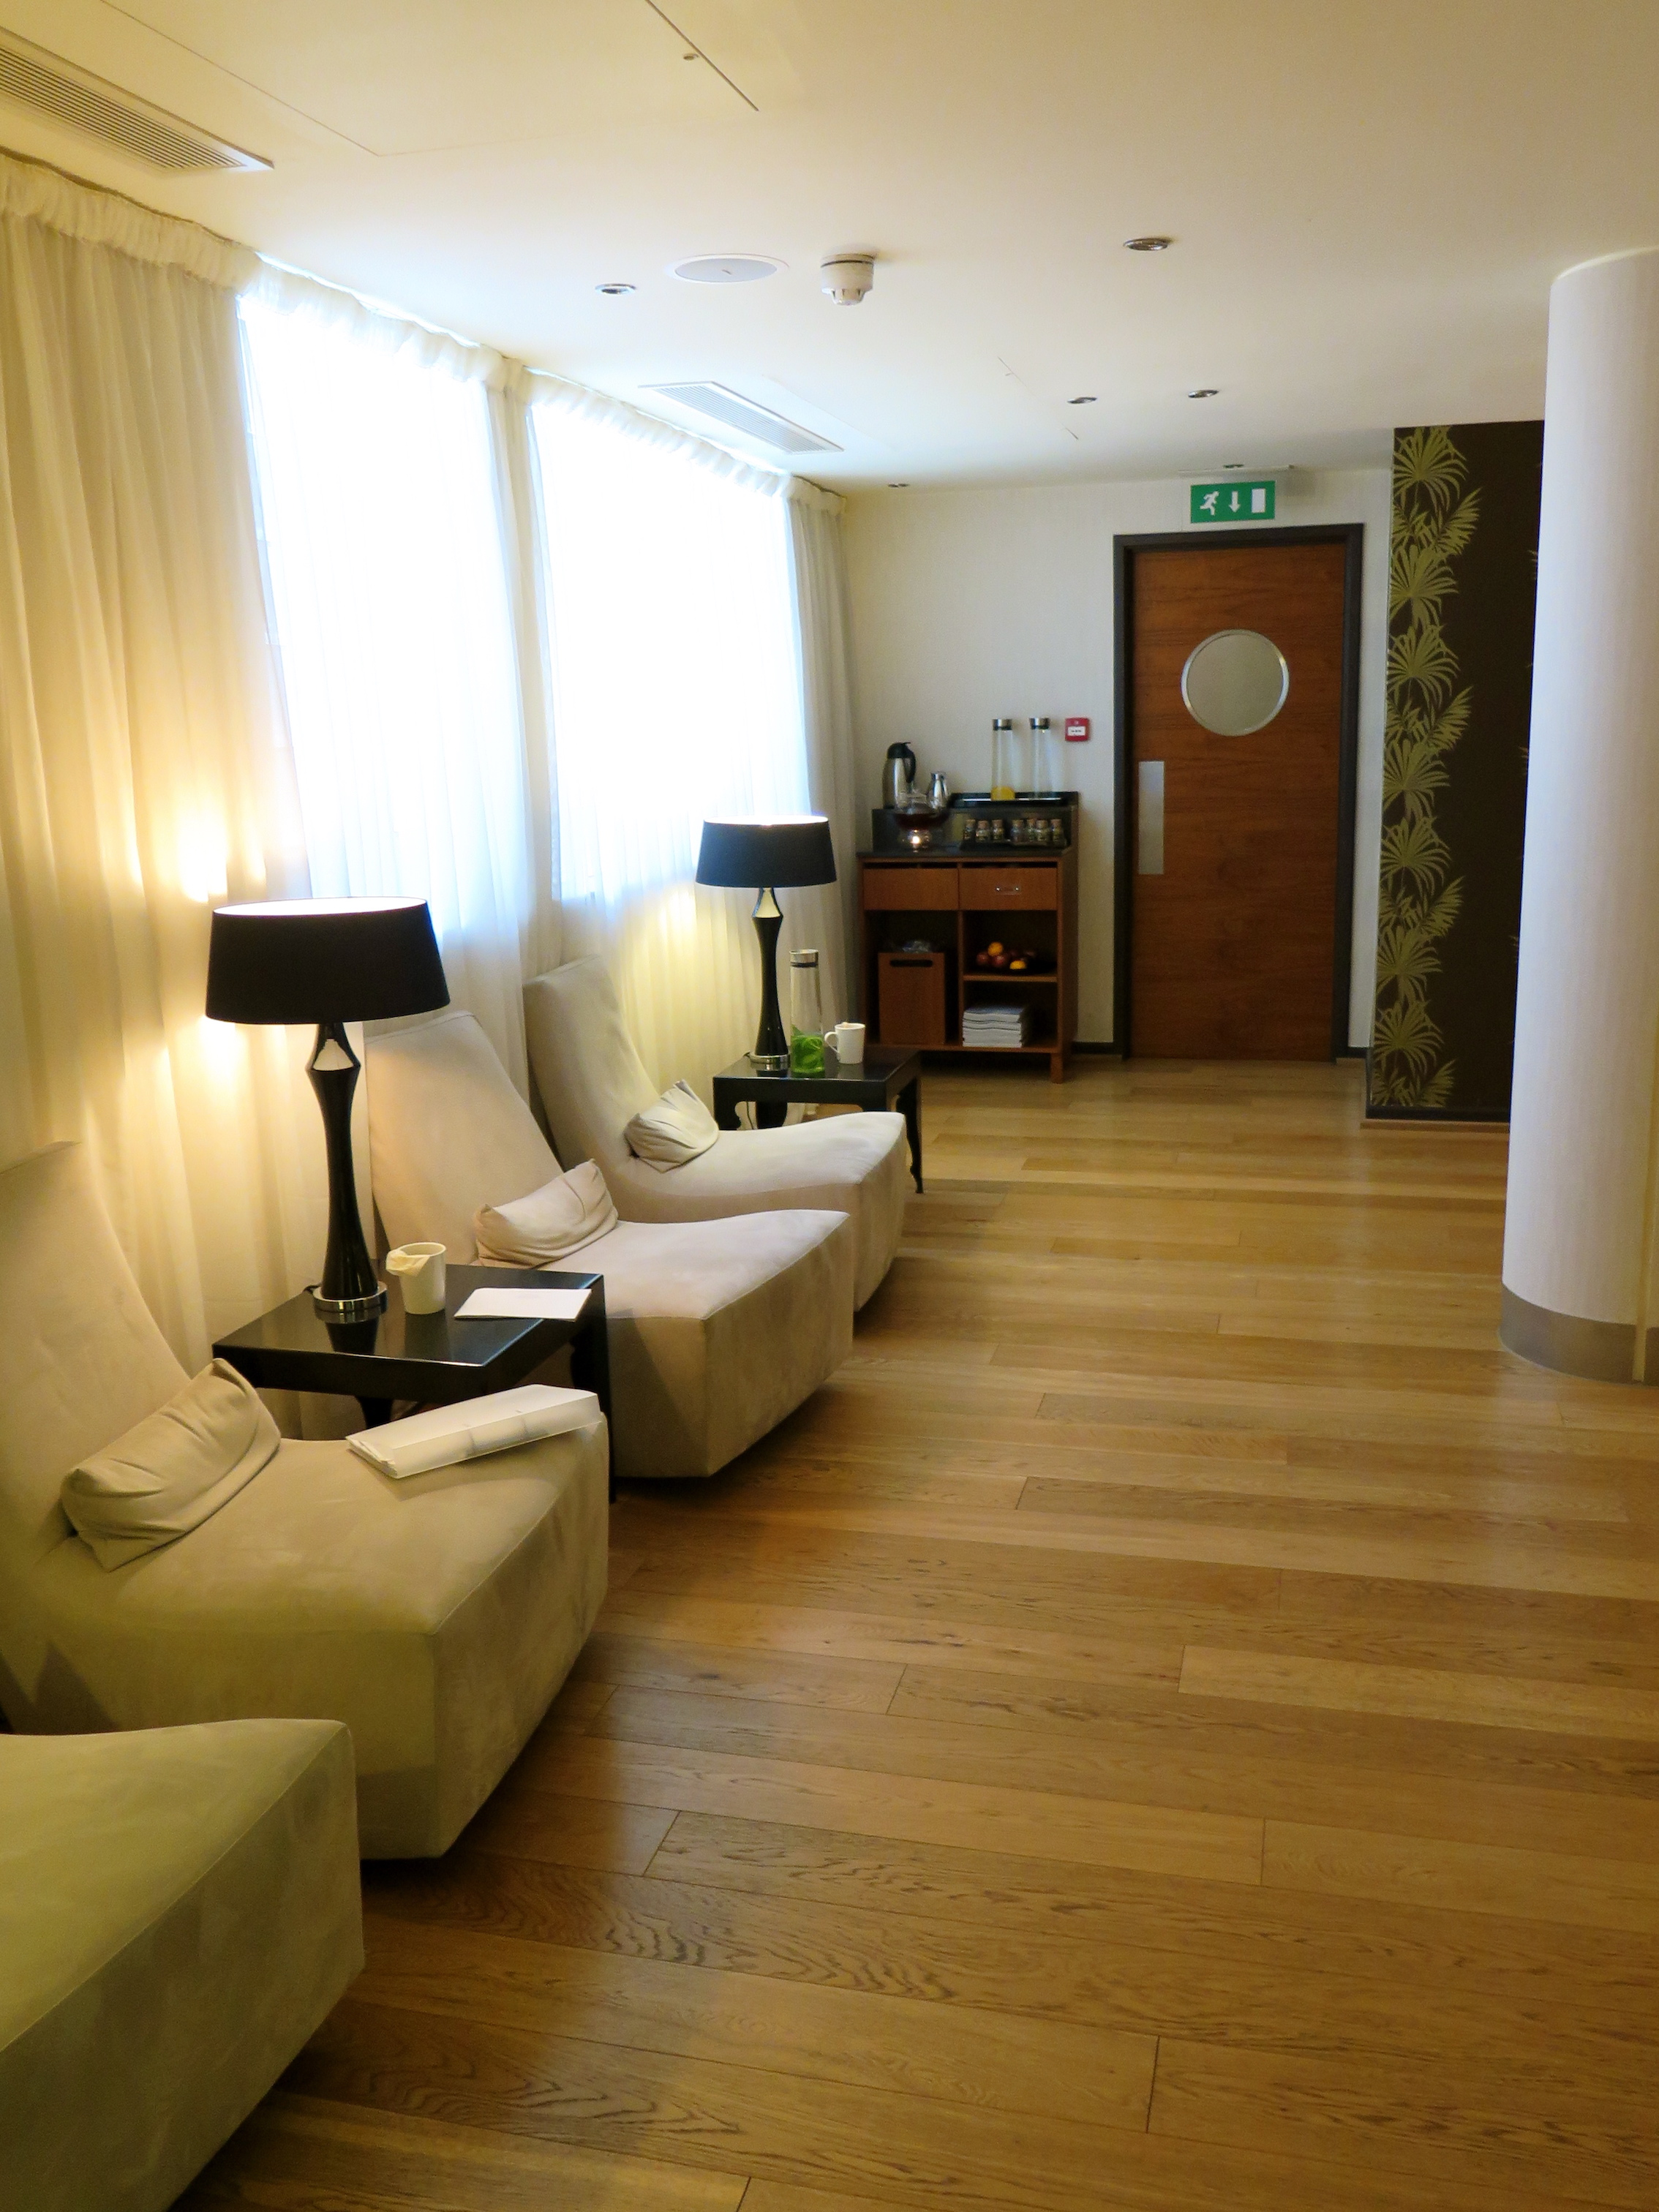 K West & Spa London Wellness